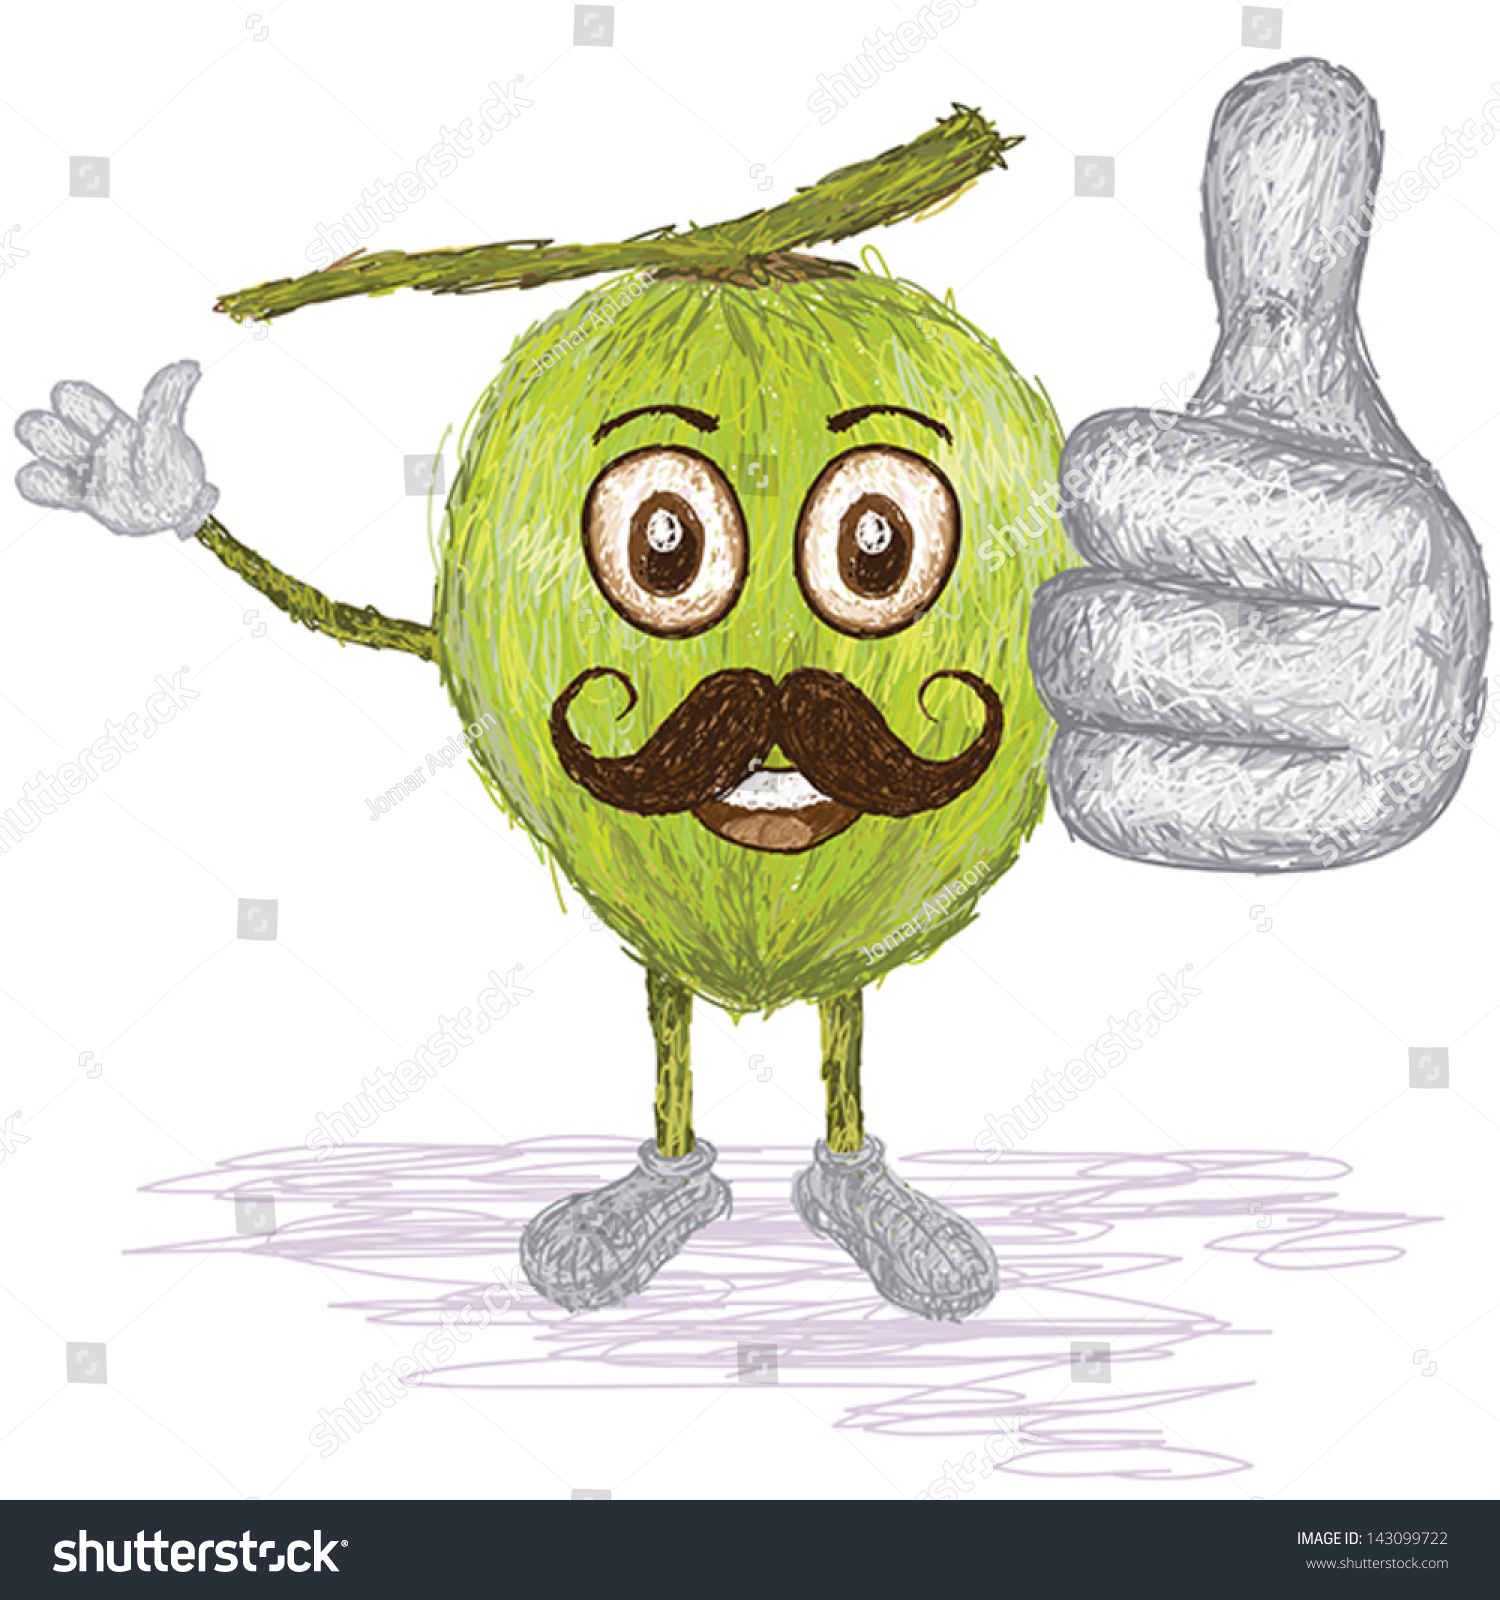 Unique Style Illustration Of Funny Happy Cartoon Green Coconut Fruit With Mustache Waving Giving Thumbs Up Gesture